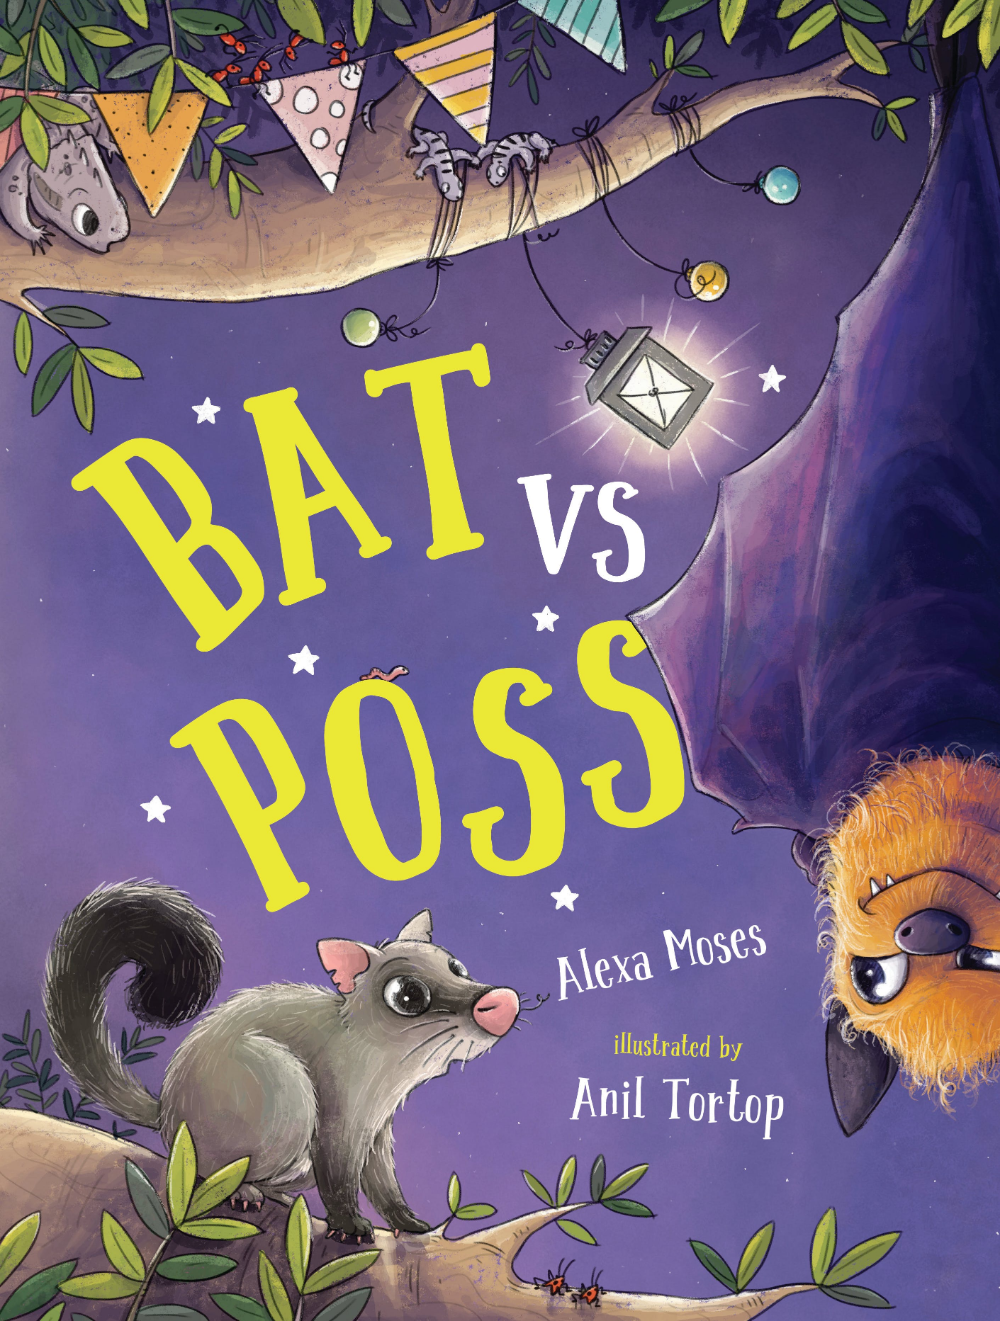 Pin by Korowa Library on CBCA Shortlisted Books 2020 in